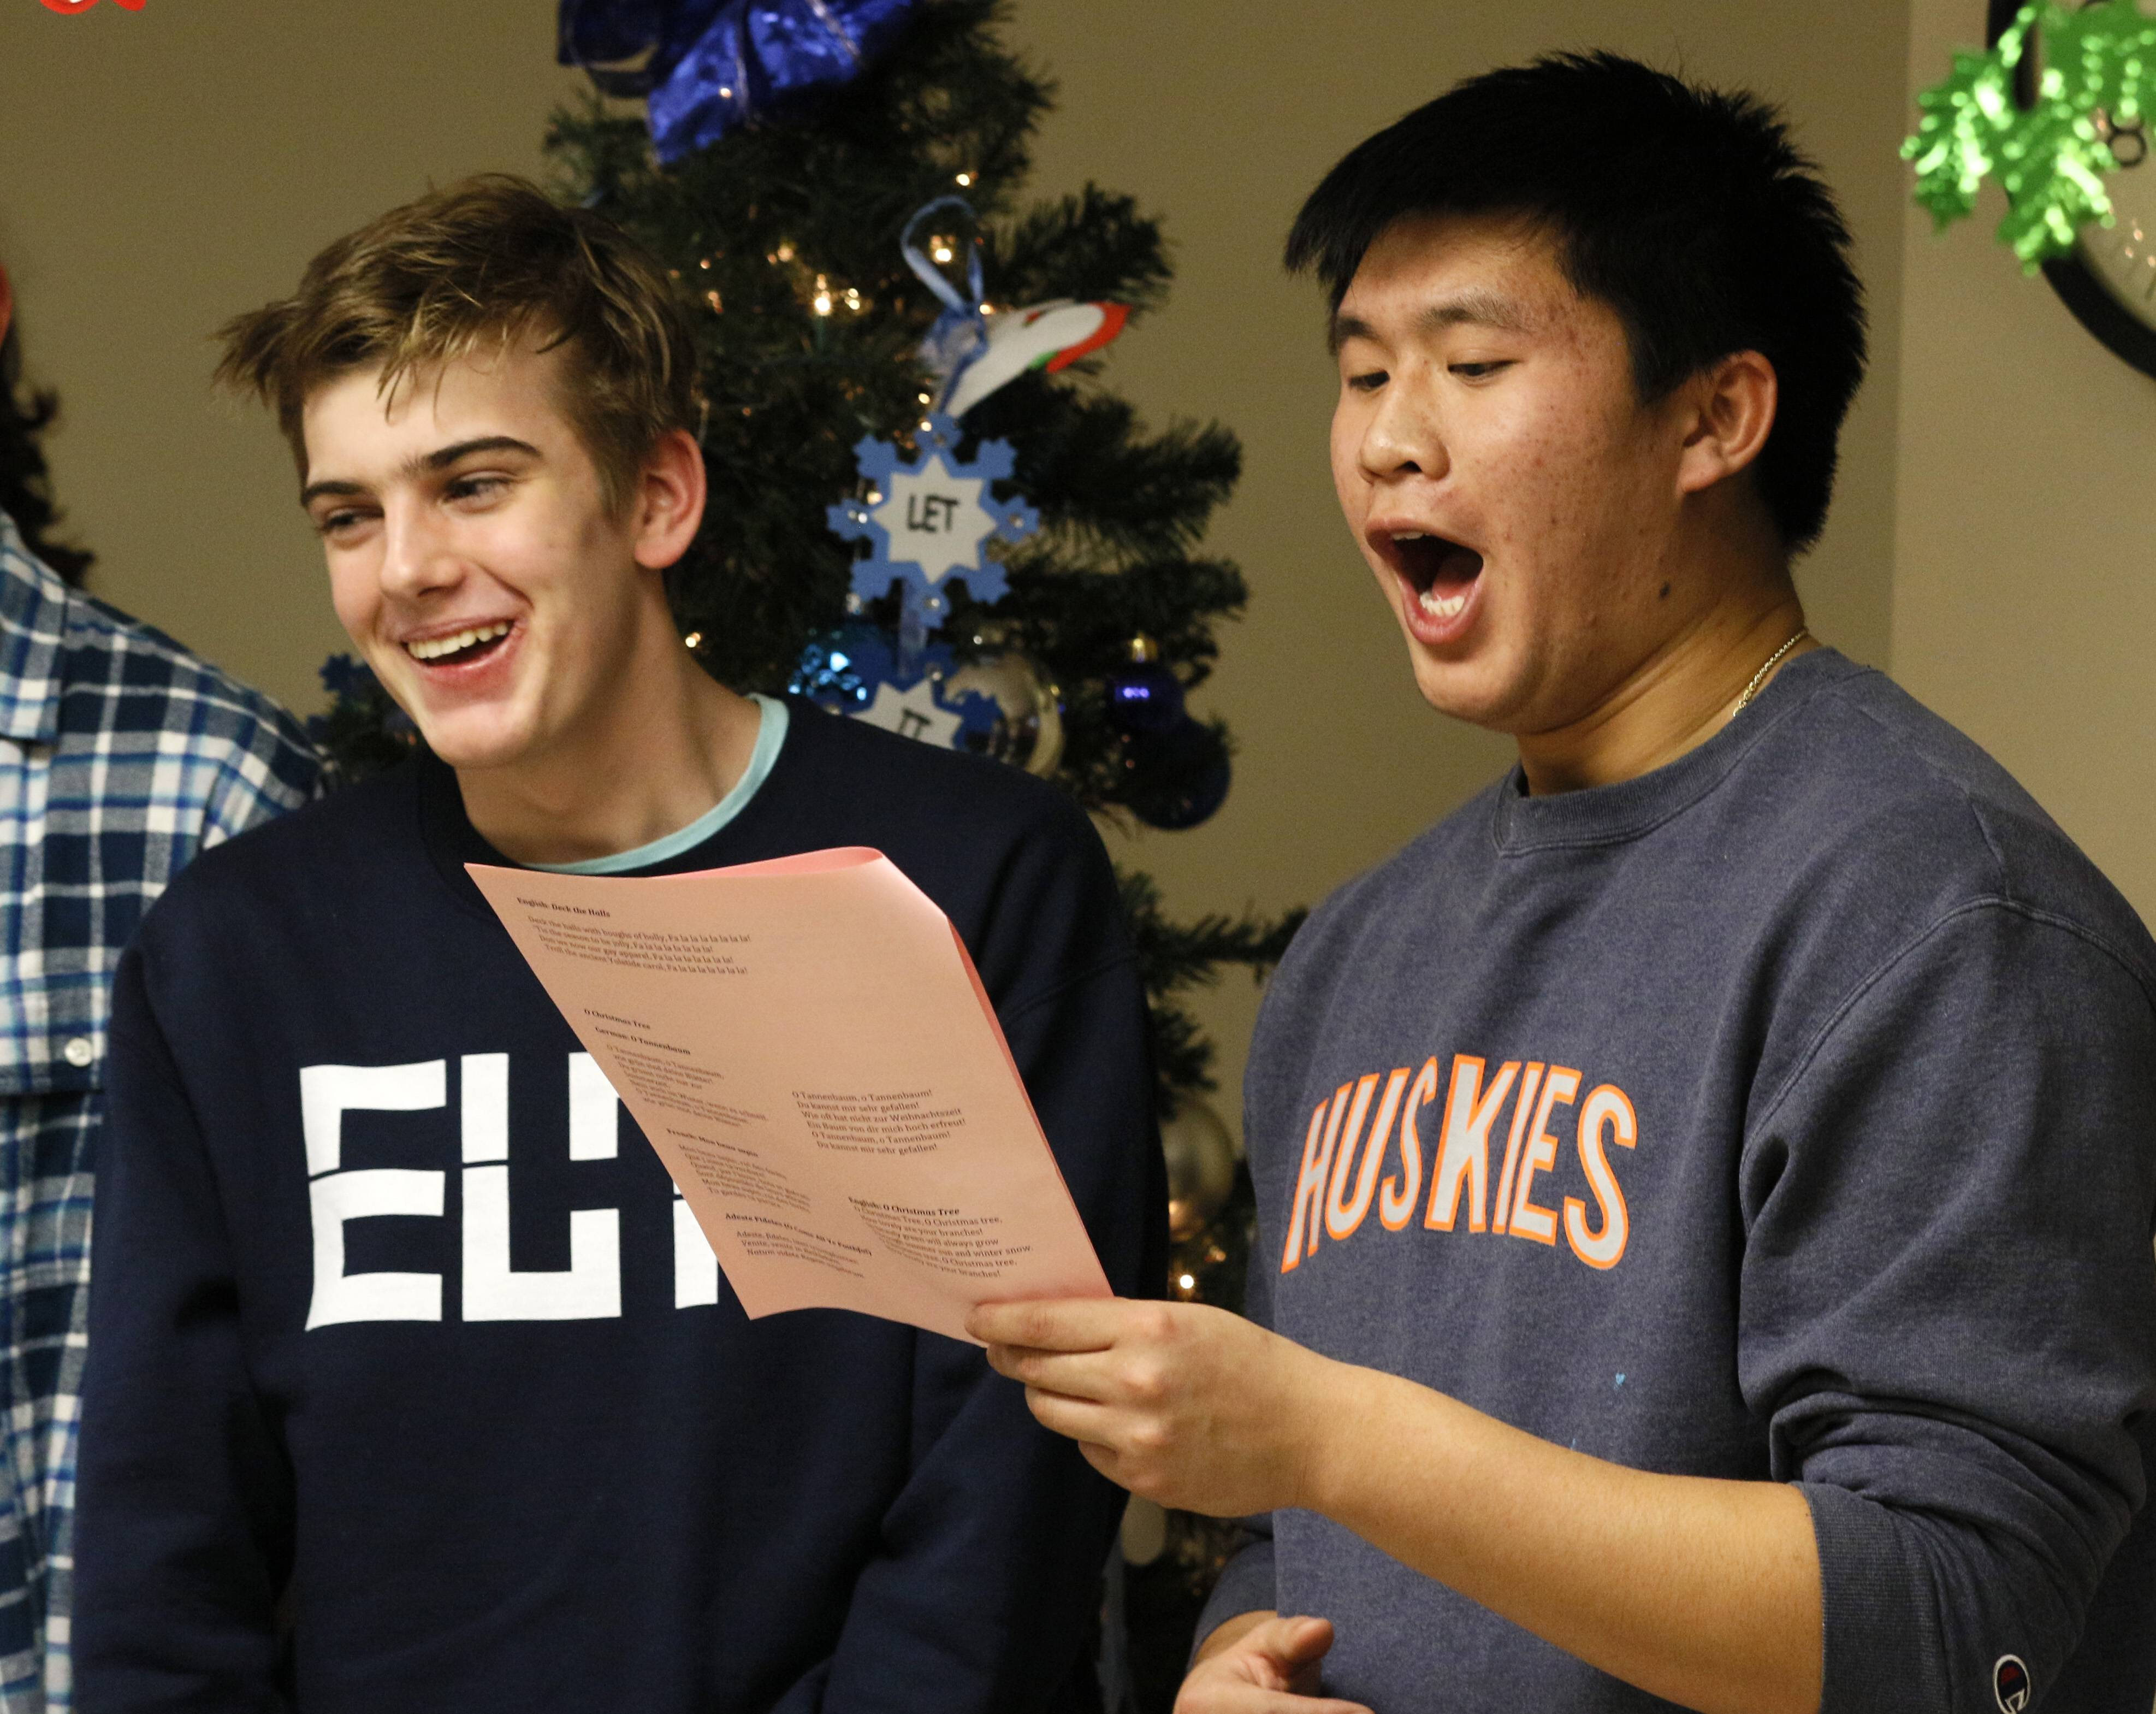 Naperville North students Liam Moore, left, and Ryan Fang sing carols to residents at Community Nursing and Rehab in Naperville.